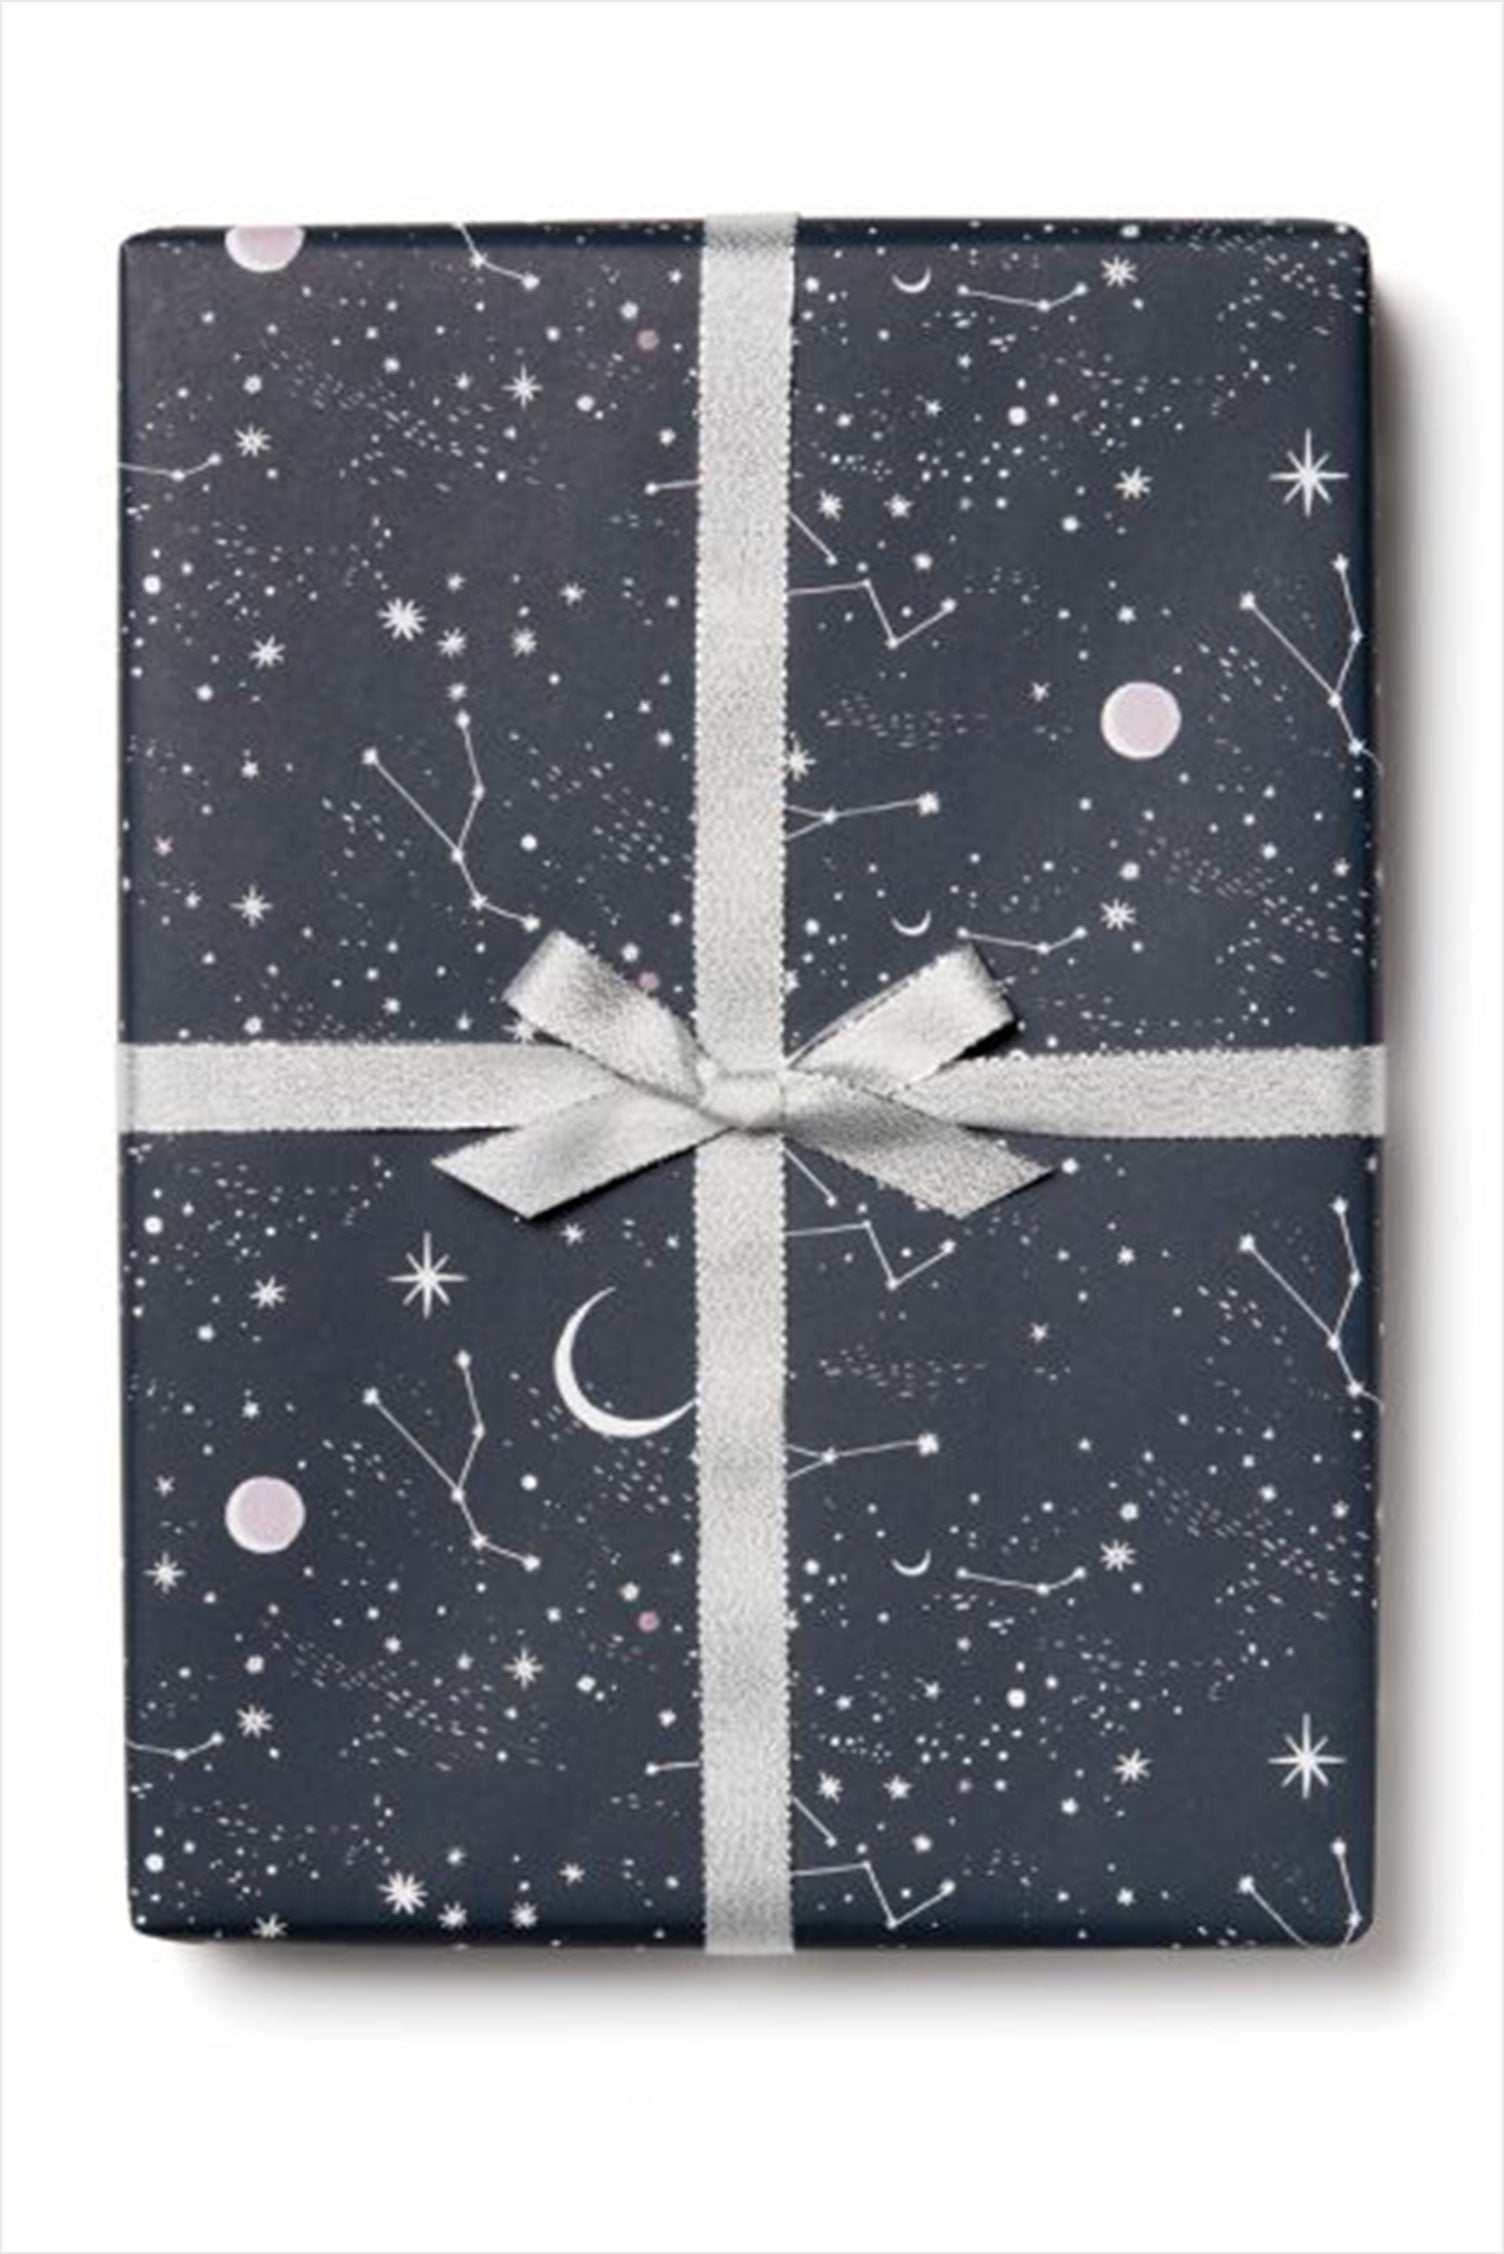 Moon And Stars Sheet Wrapping Paper